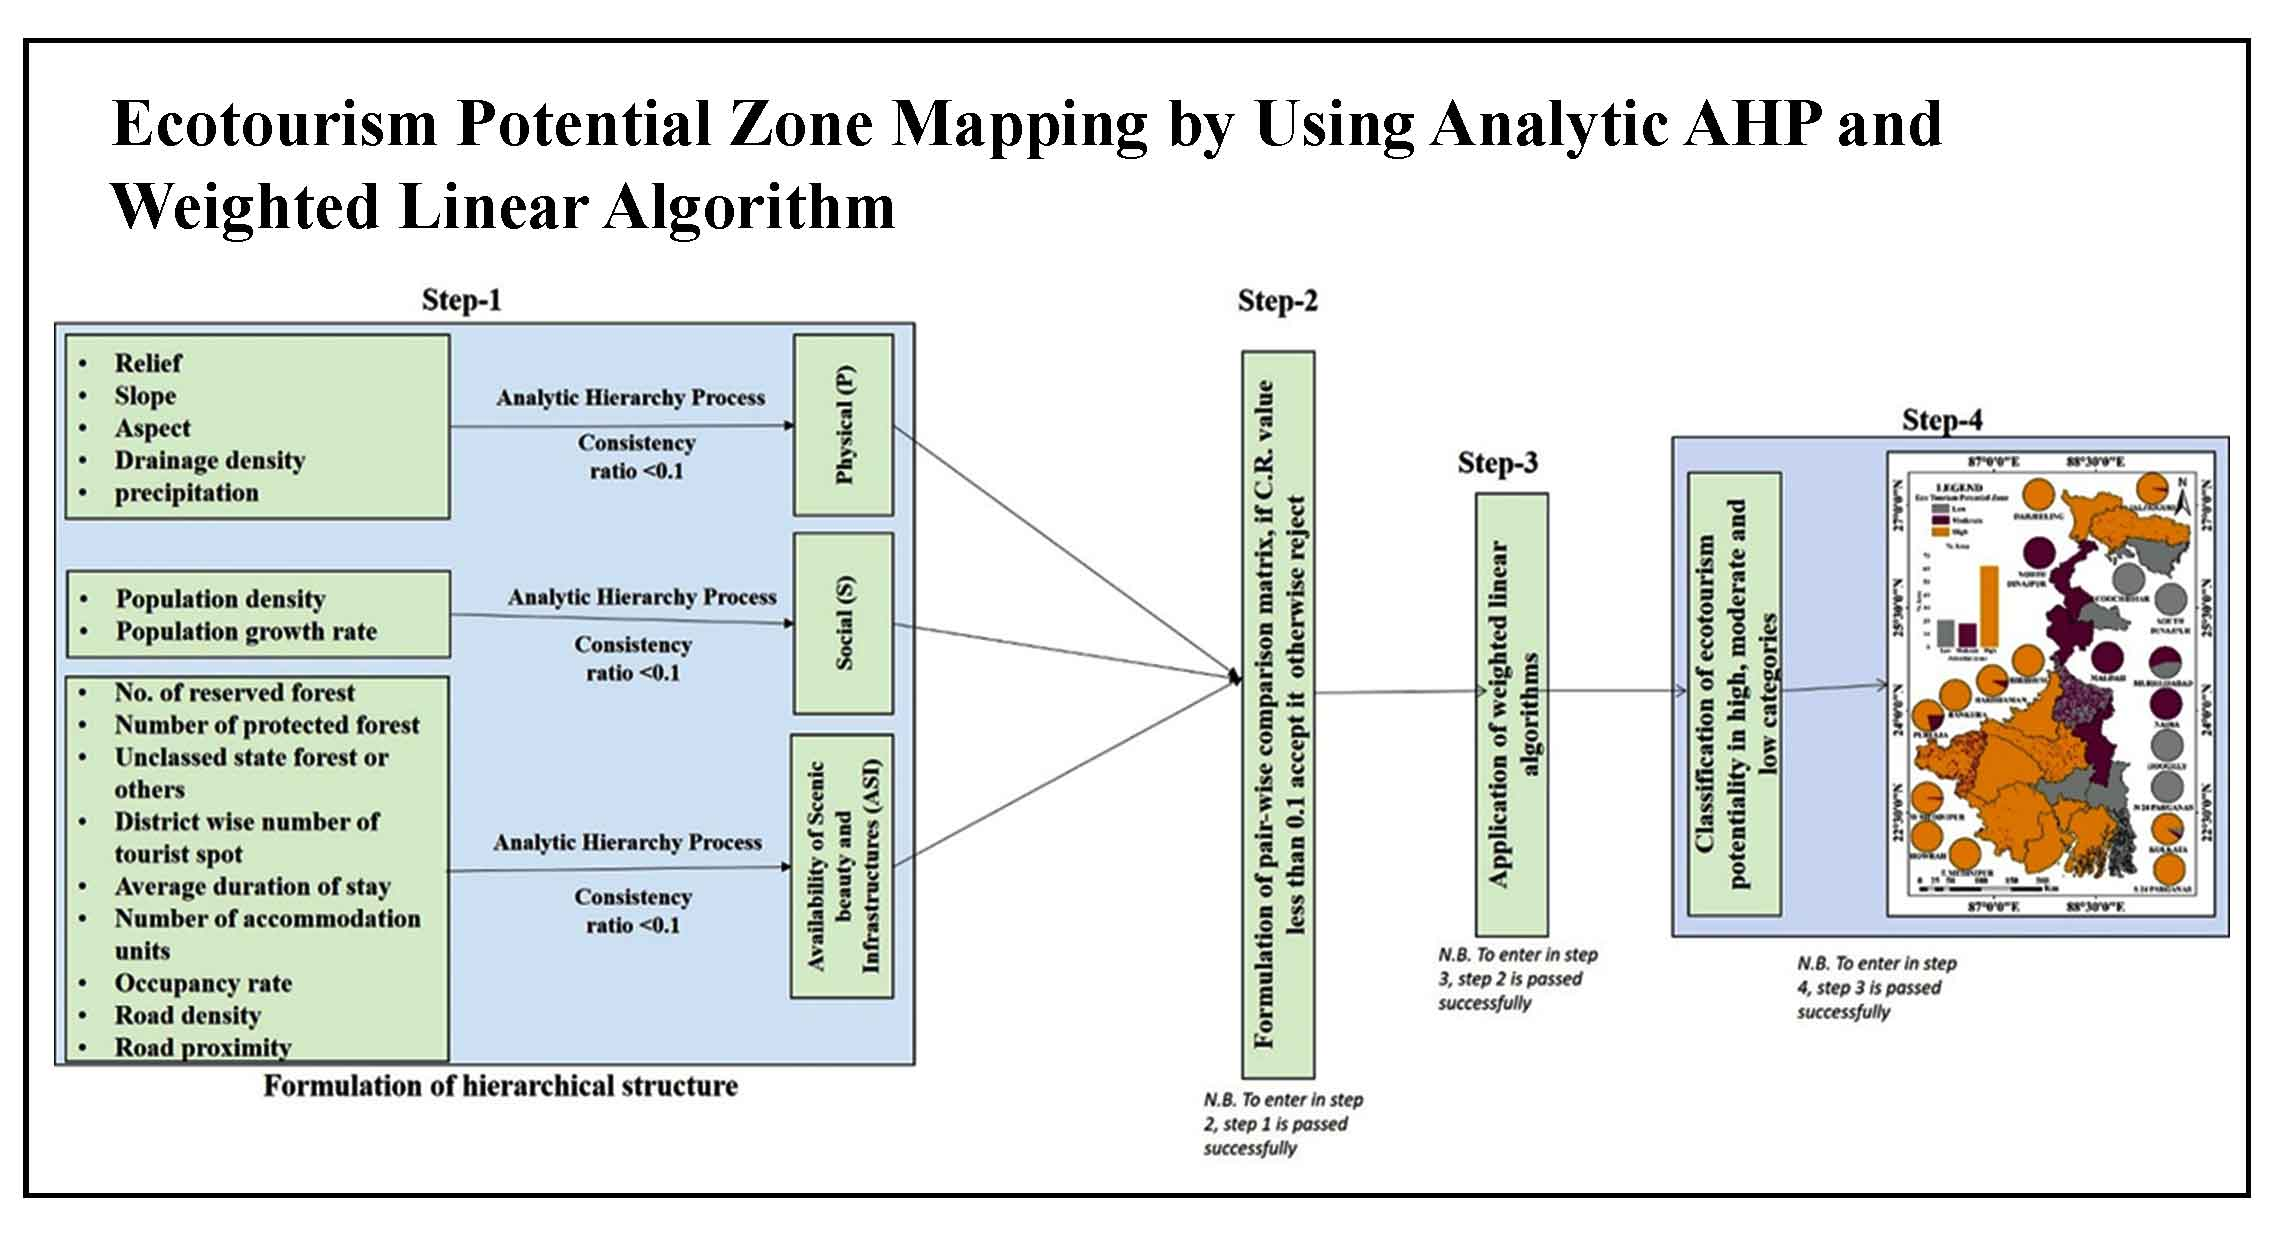 Ecotourism Potential Zone Mapping by Using Analytic Hierarchy Process (AHP) and Weighted Linear Algorithm: A Study on West Bengal, India